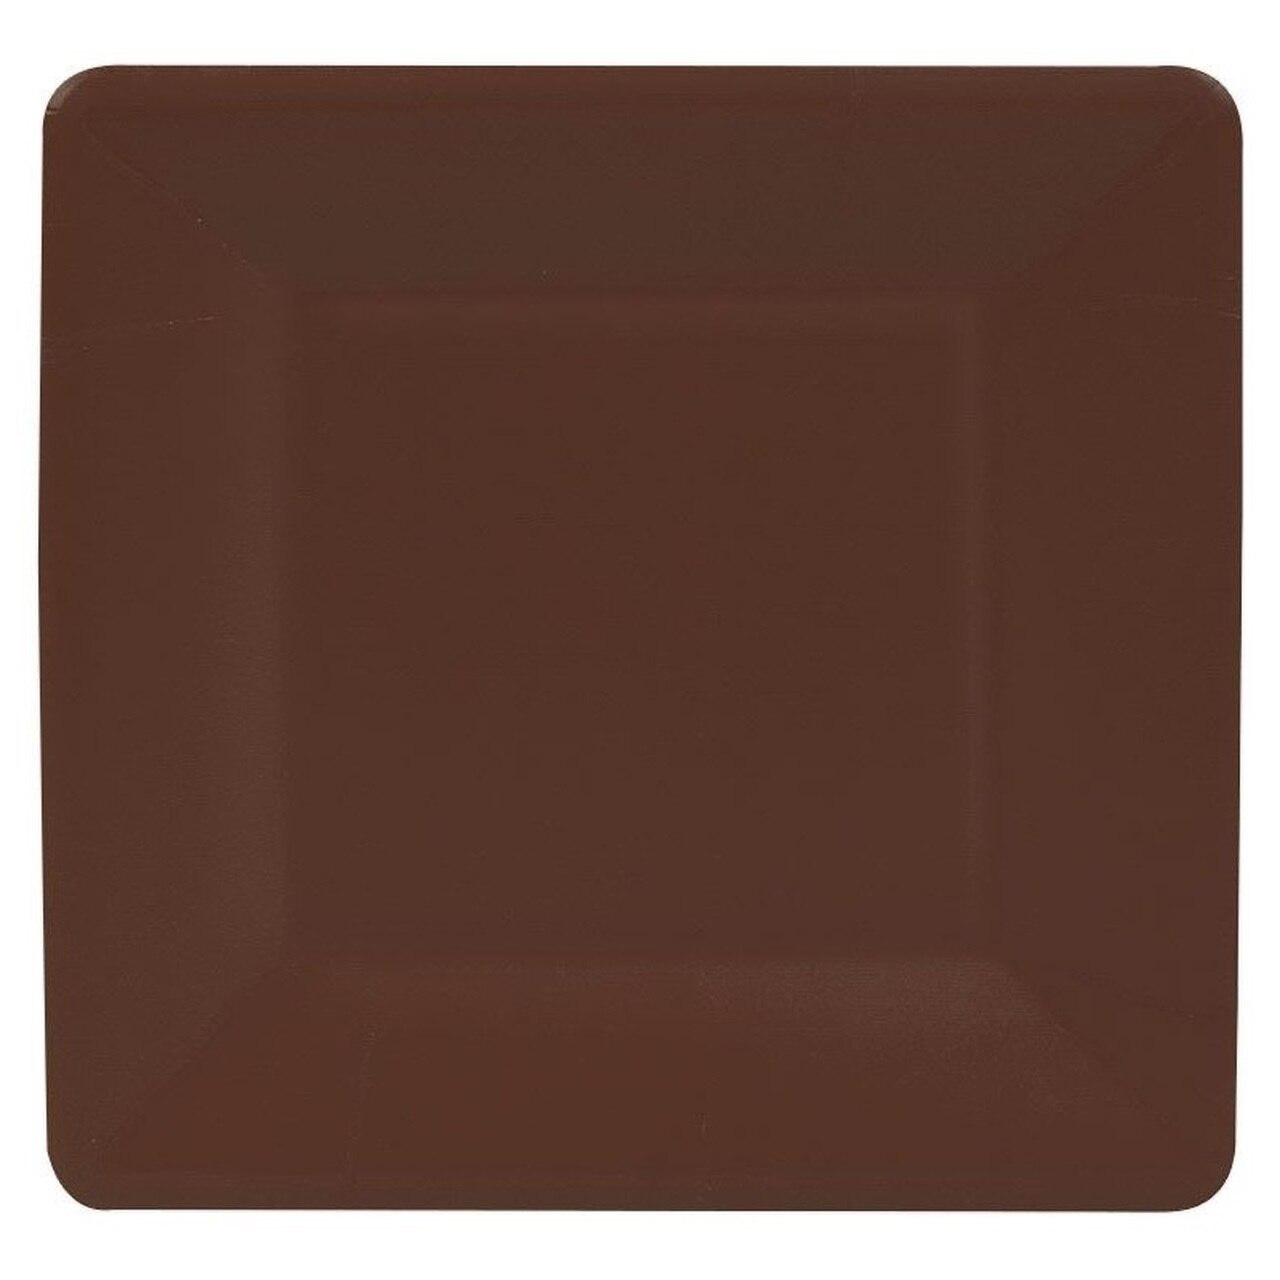 Square Paper Plate in Chestnut